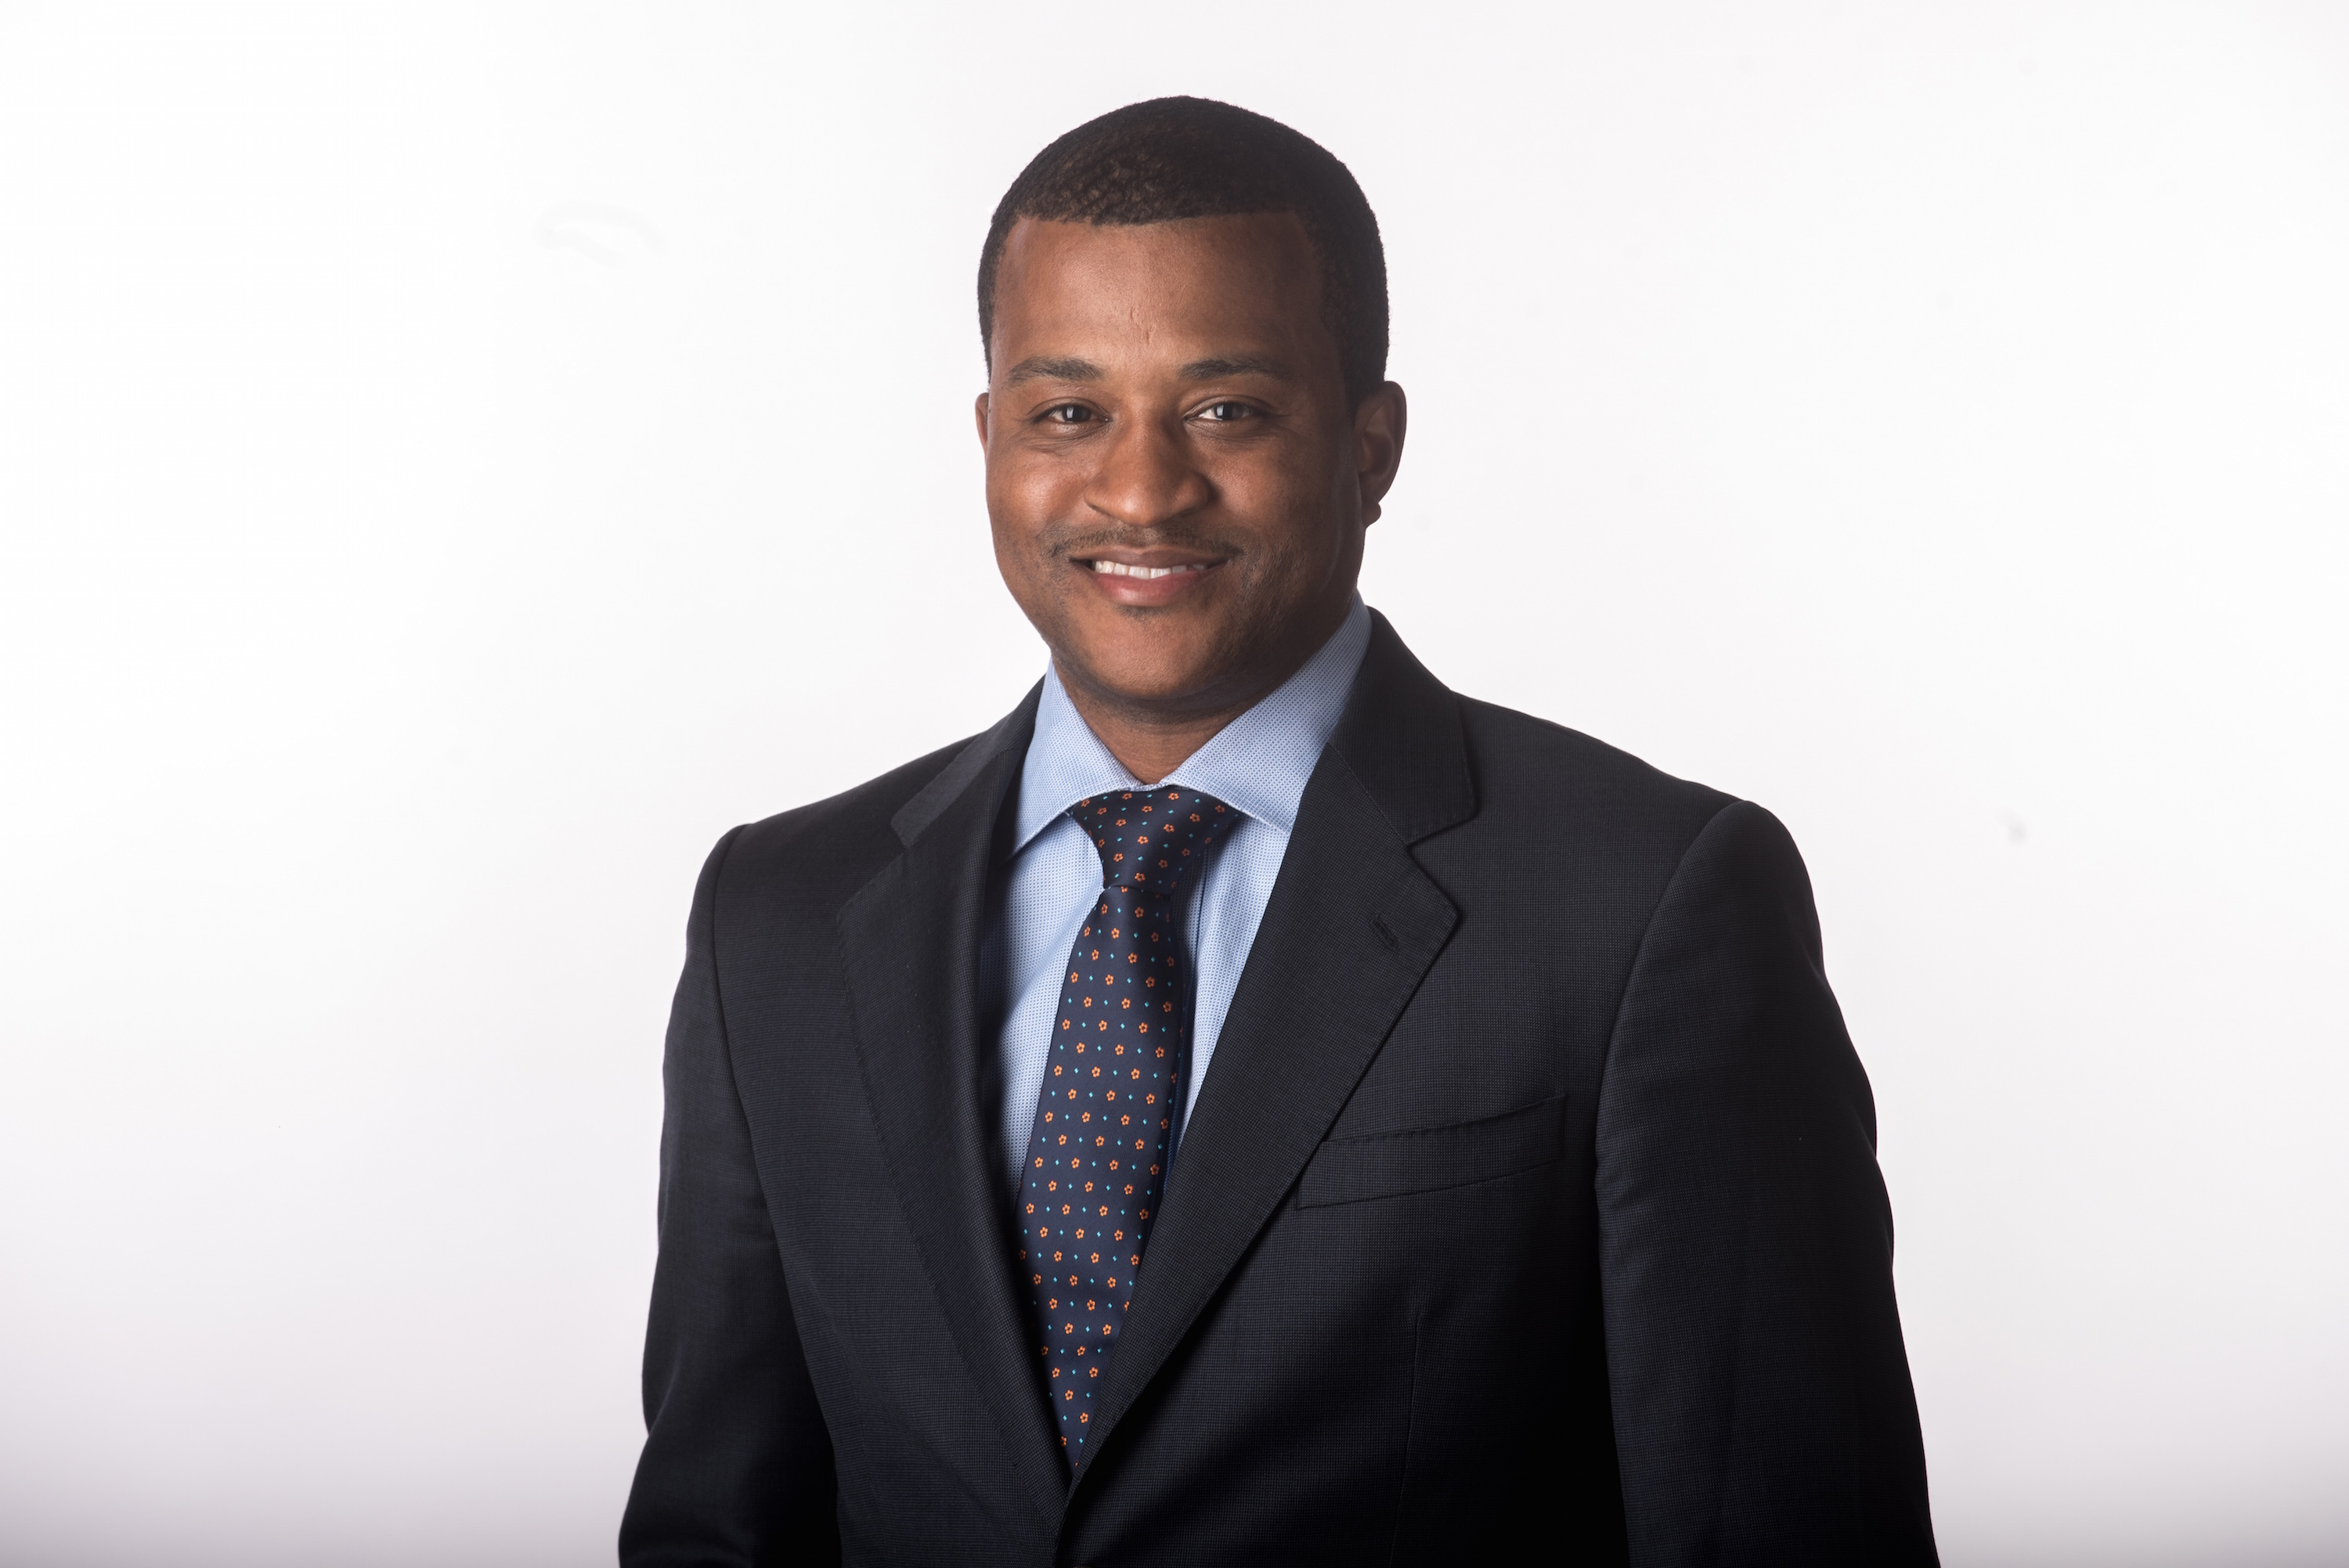 Gerald Fanion III is the new director of Education Pioneers in Tennessee.